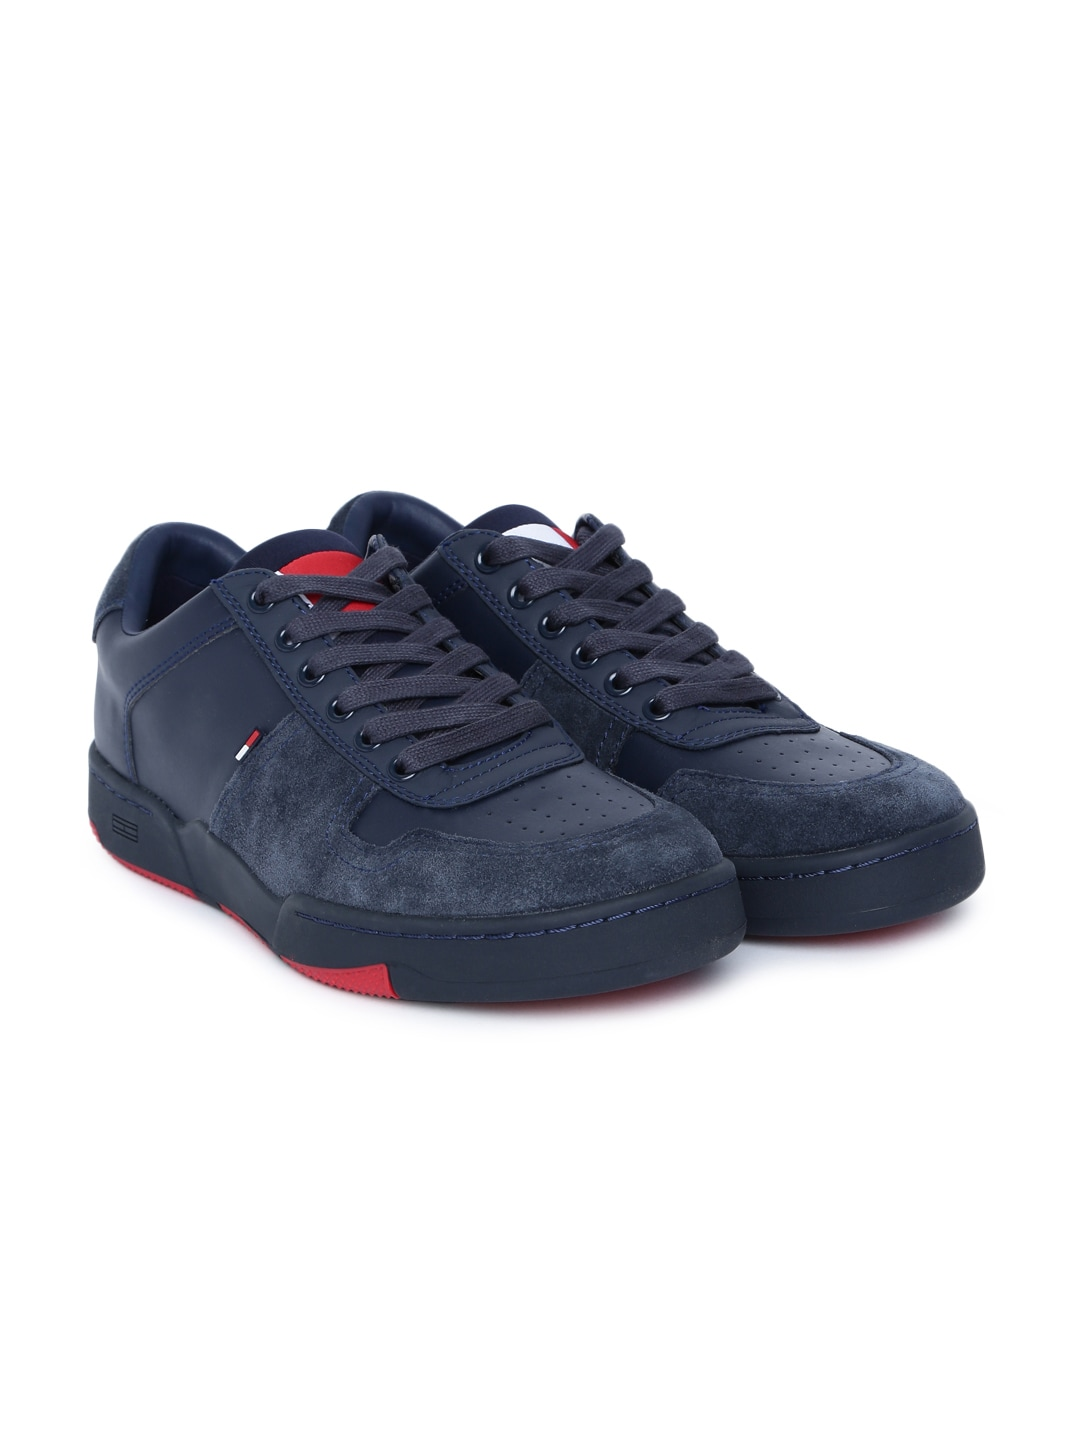 8731f60dcc37c Tommy Hilfiger Shoes - Buy Tommy Hilfiger Shoes Online - Myntra